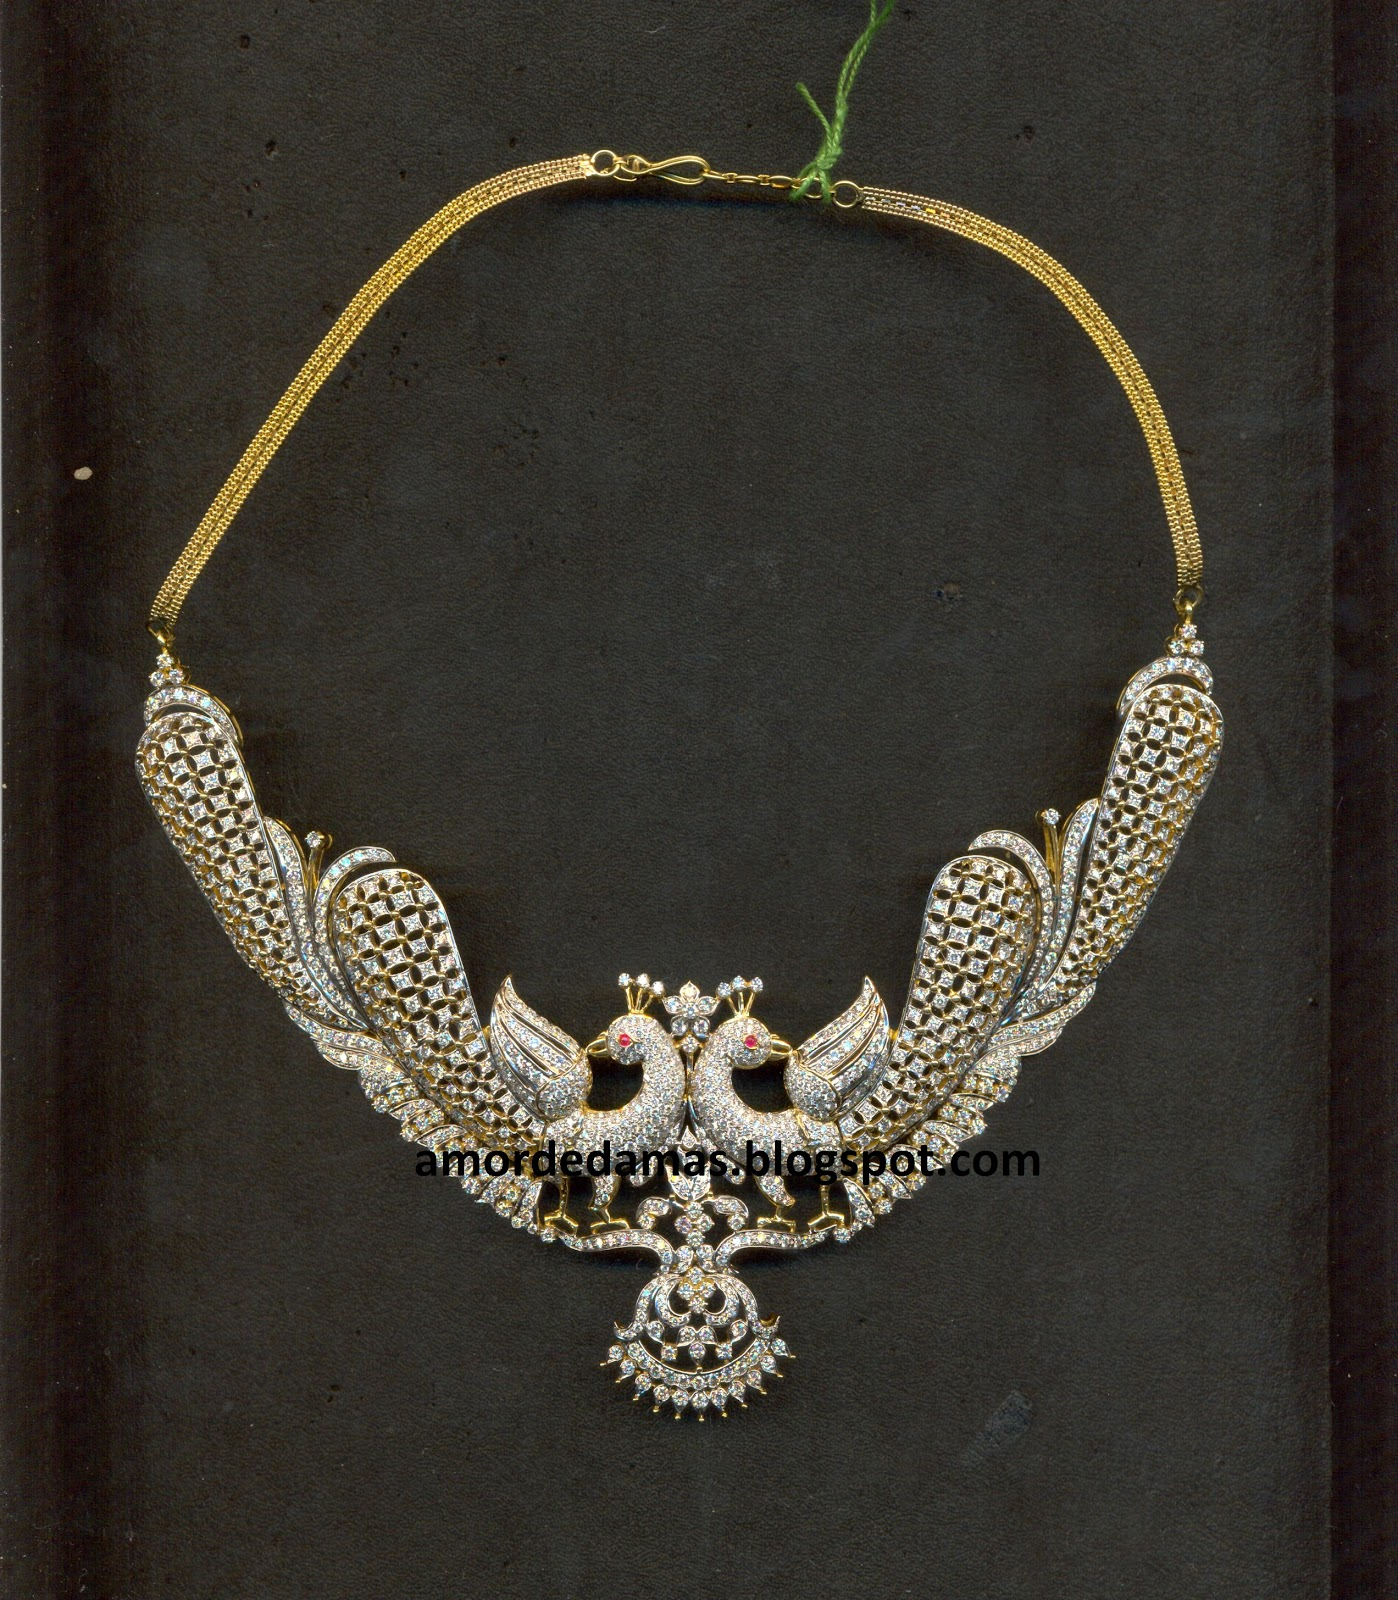 Diamonds Jewellery: Its All About Jewellery: Diamond Necklace Designs